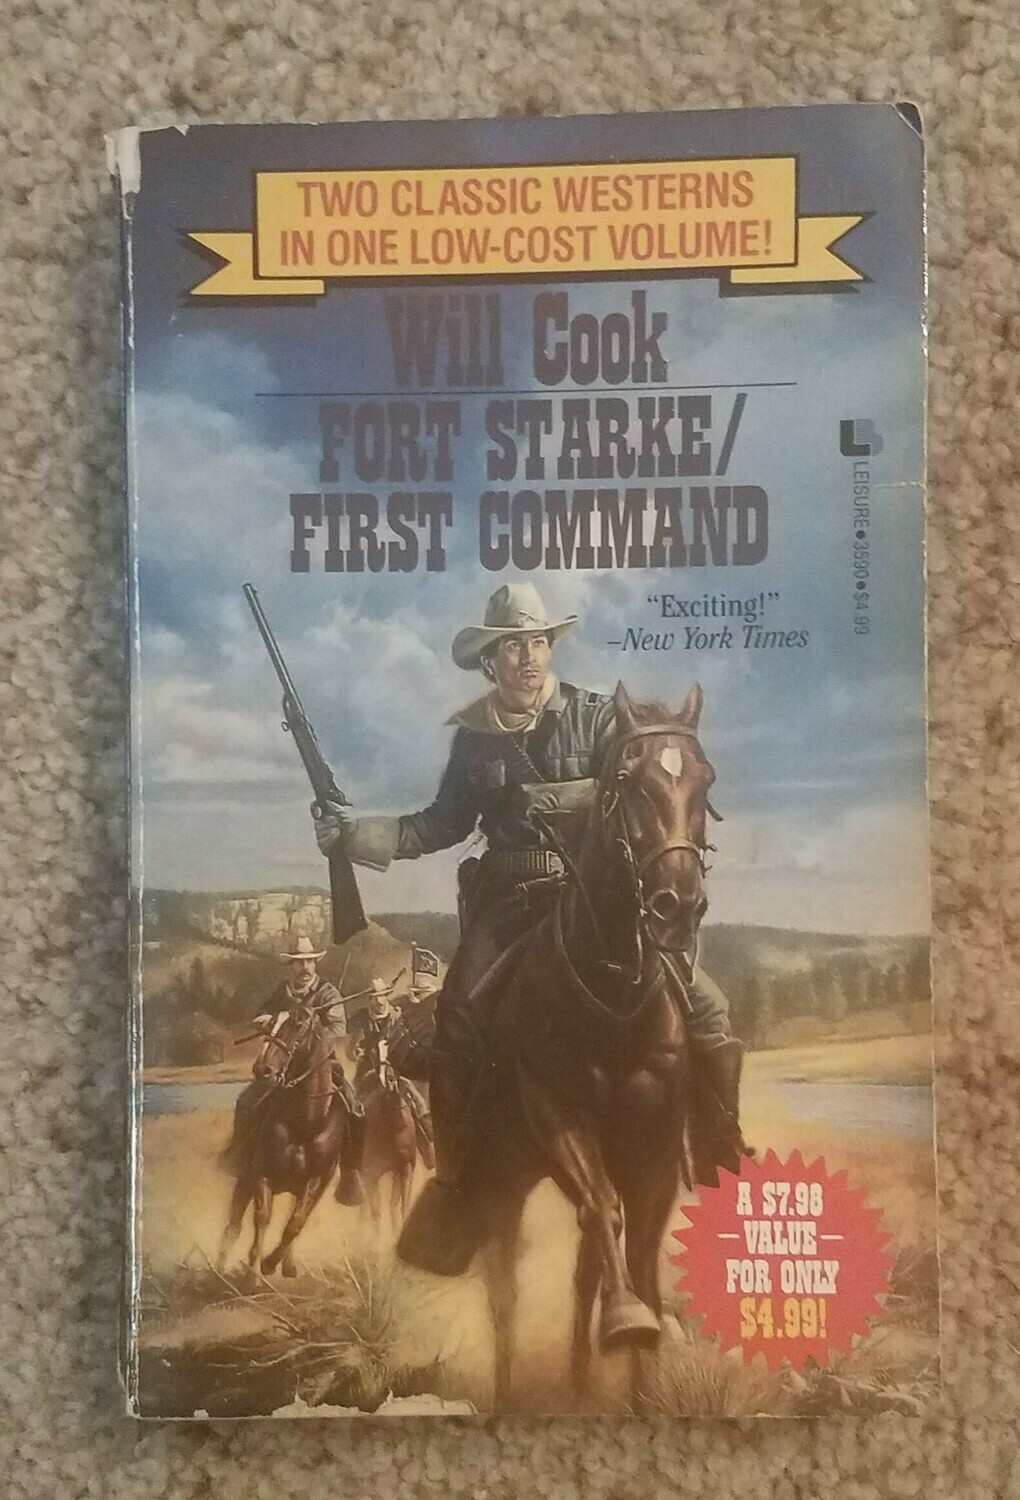 Fort Starke/First Command by Will Cook